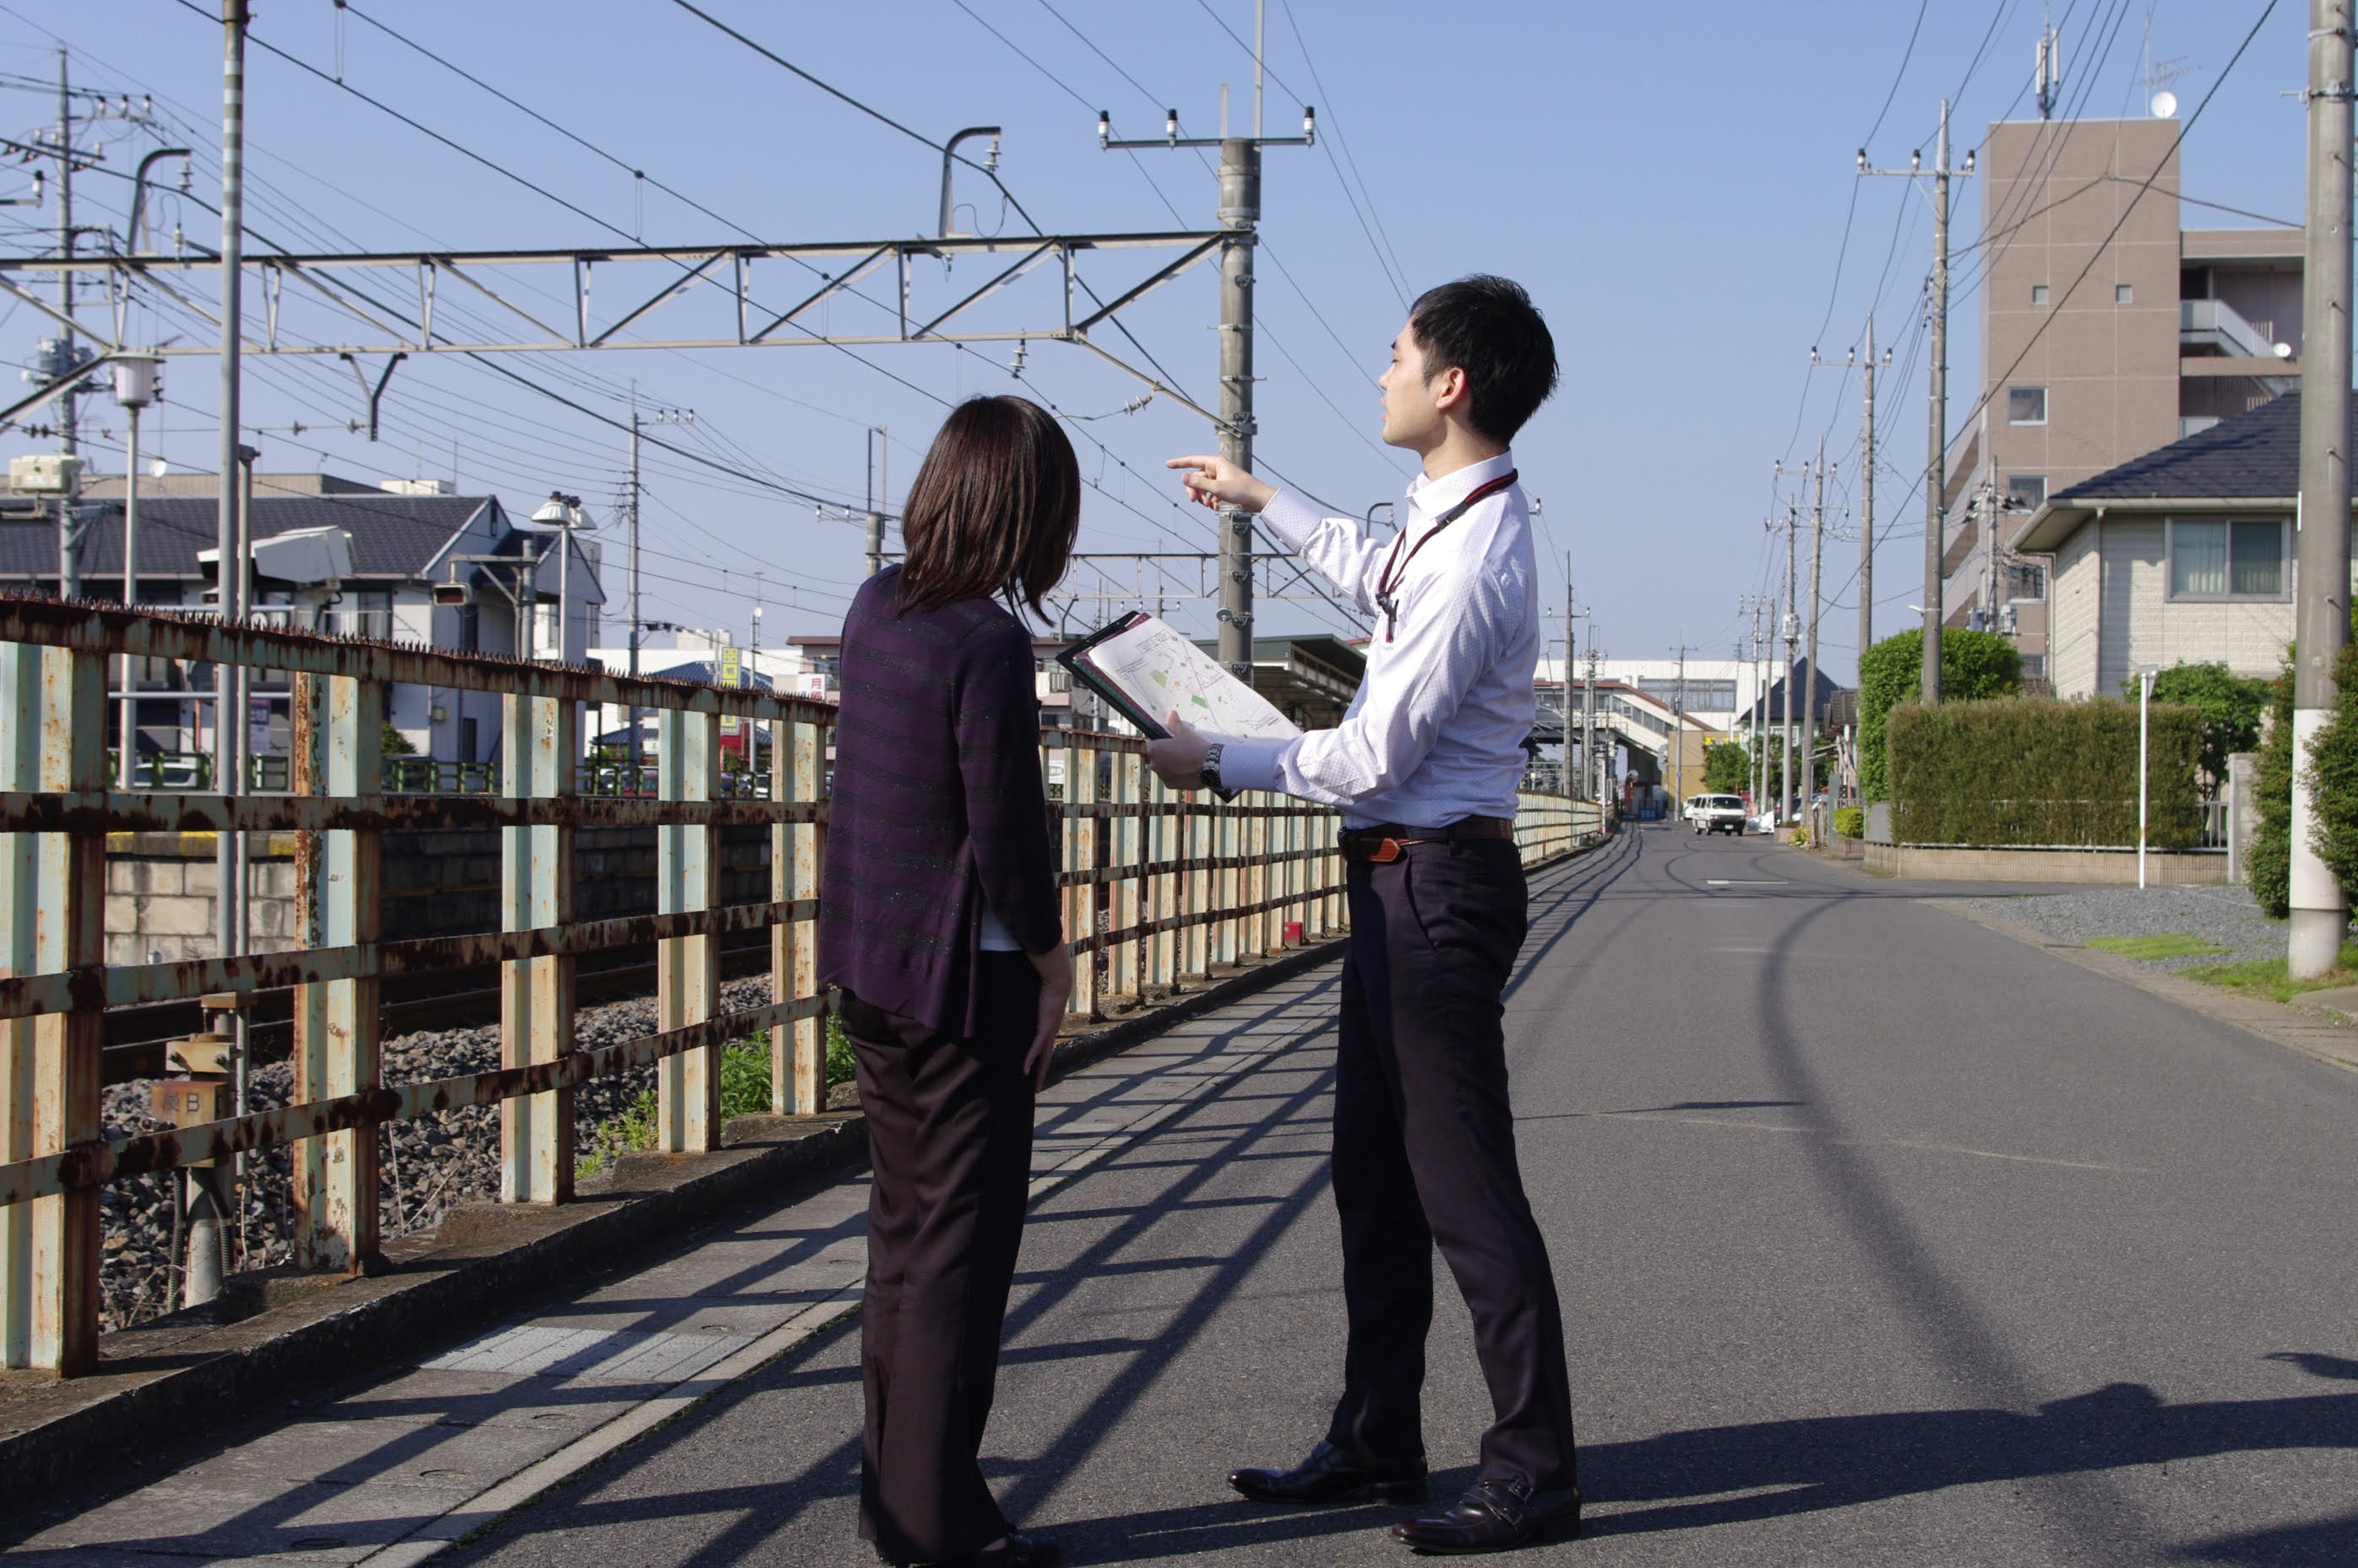 Haginoya discussing the environment of a crime site with an investigator in Japan